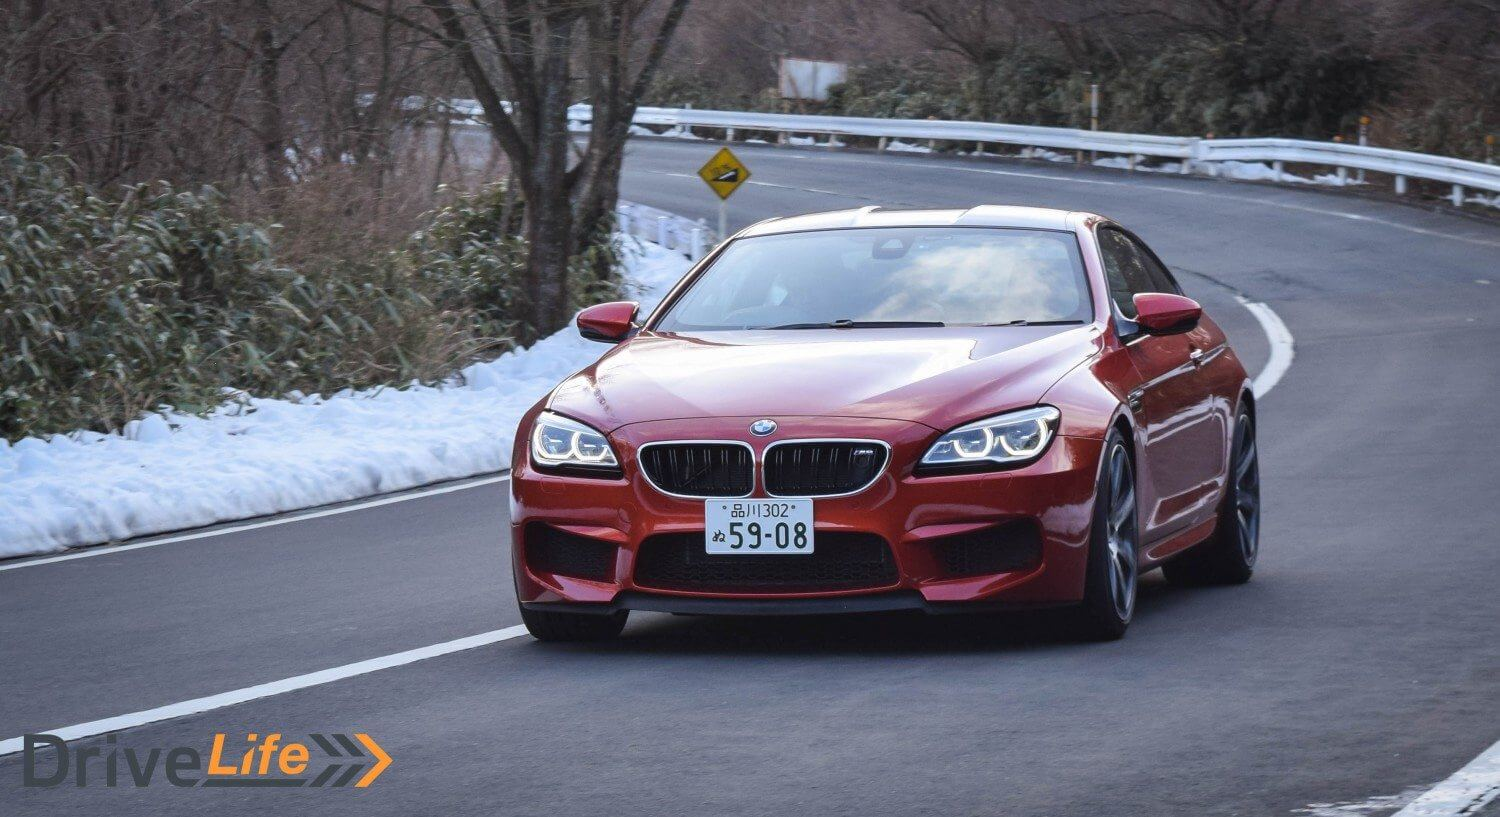 drive-life-nz-car-review-bmw-m6-competition-2016-13